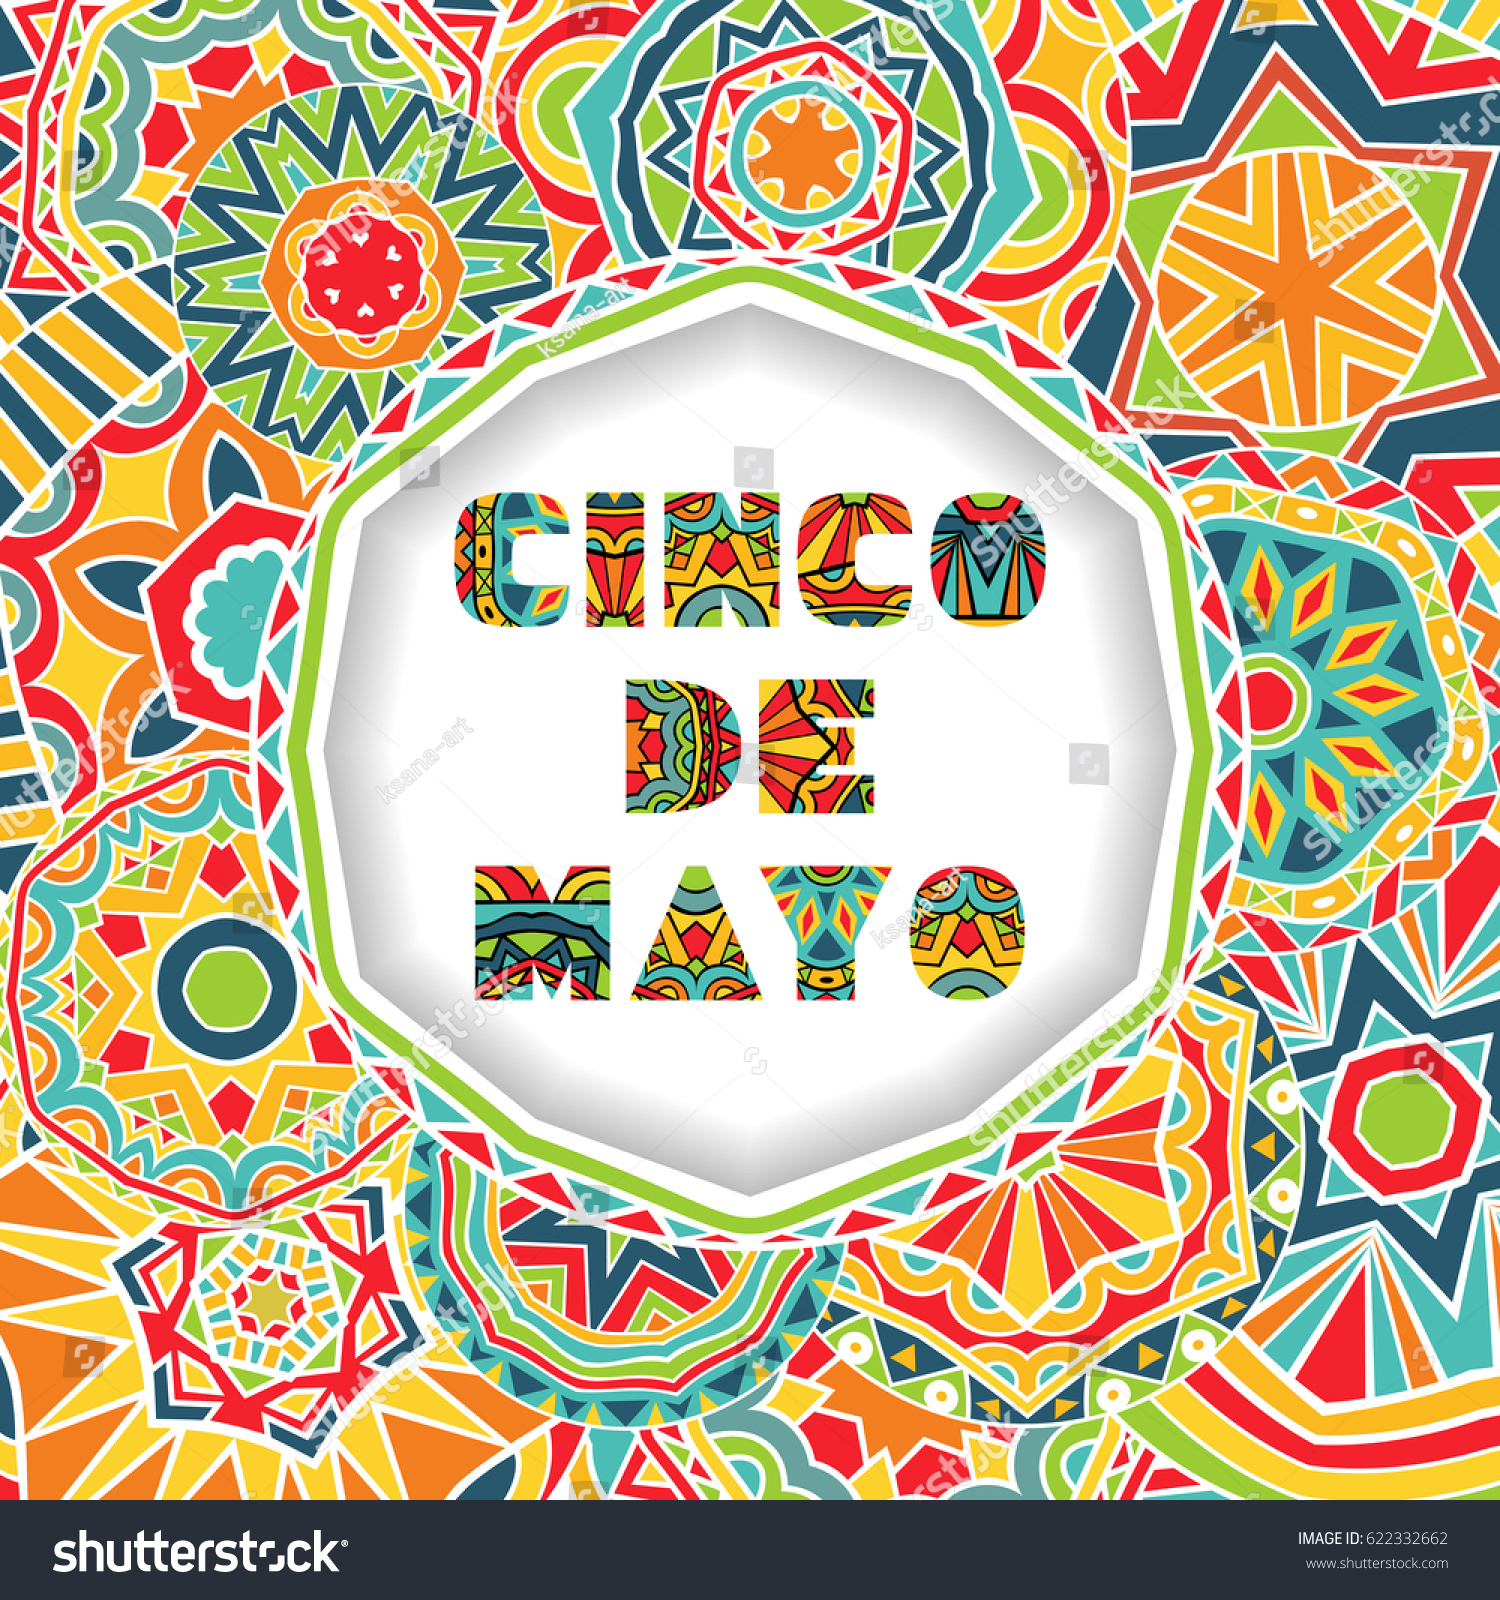 Cinco de mayo card greetings lettering stock vector royalty free cinco de mayo card with greetings lettering and ornate background round cut border with shadow m4hsunfo